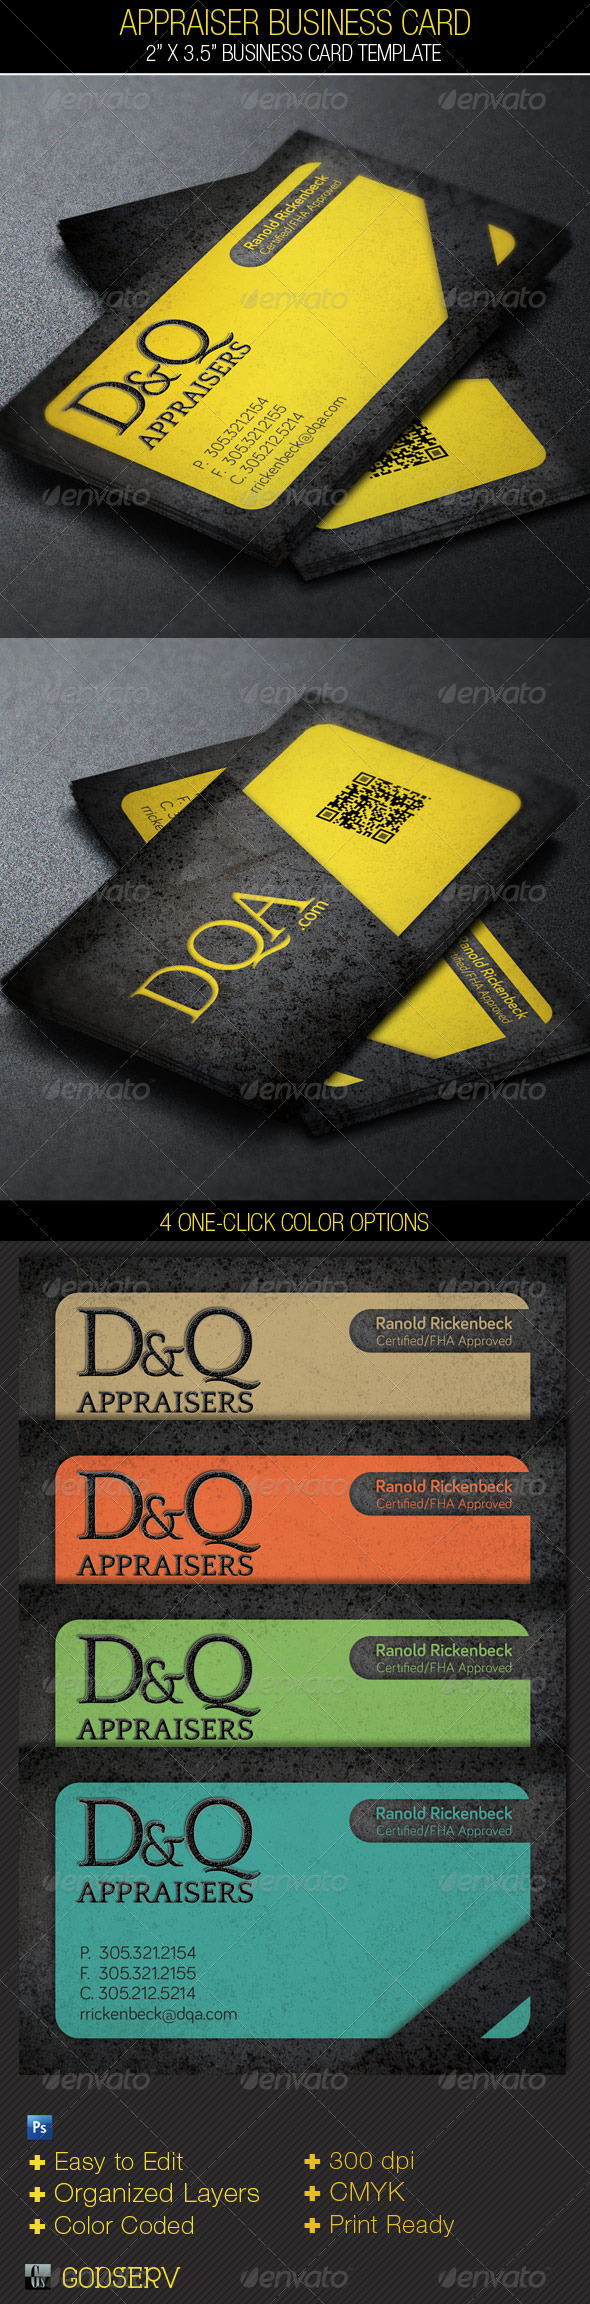 GraphicRiver Appraiser Business Card Template 4606383